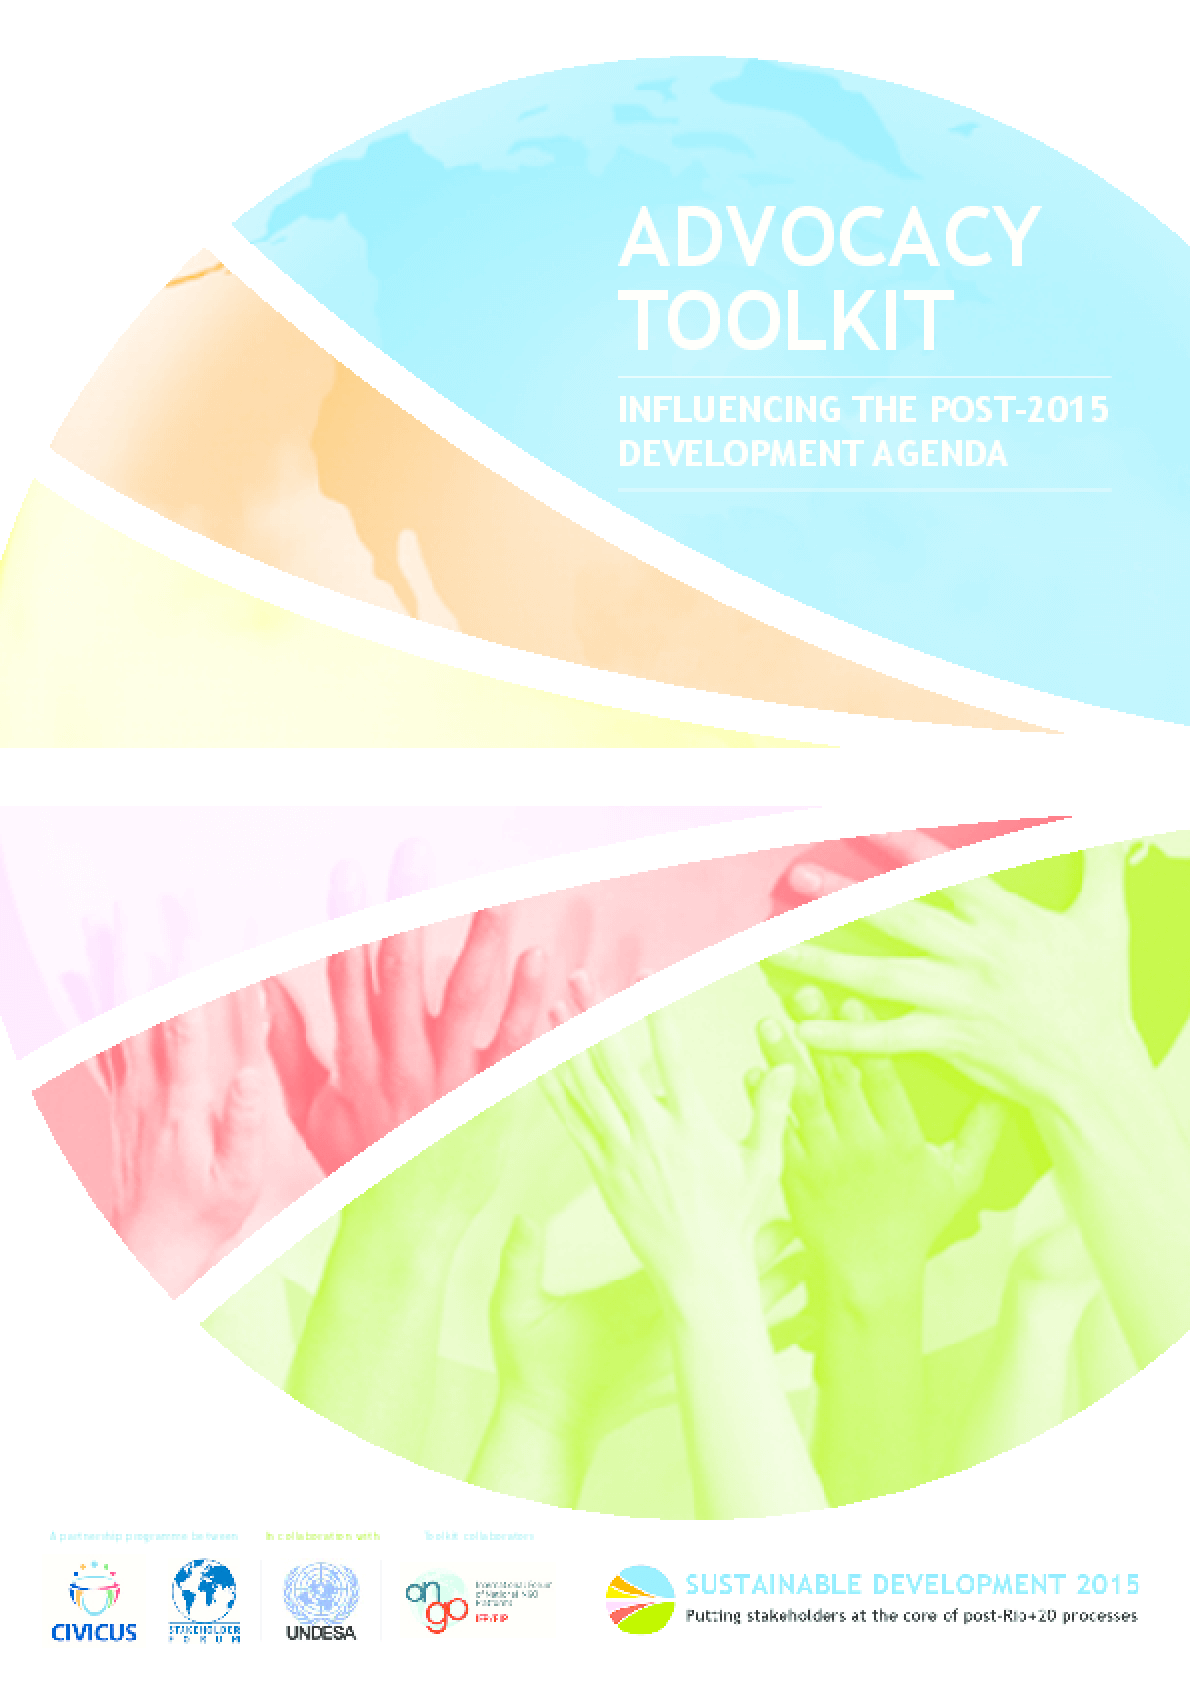 Advocacy Toolkit: Influencing the post-2015 Development Agenda